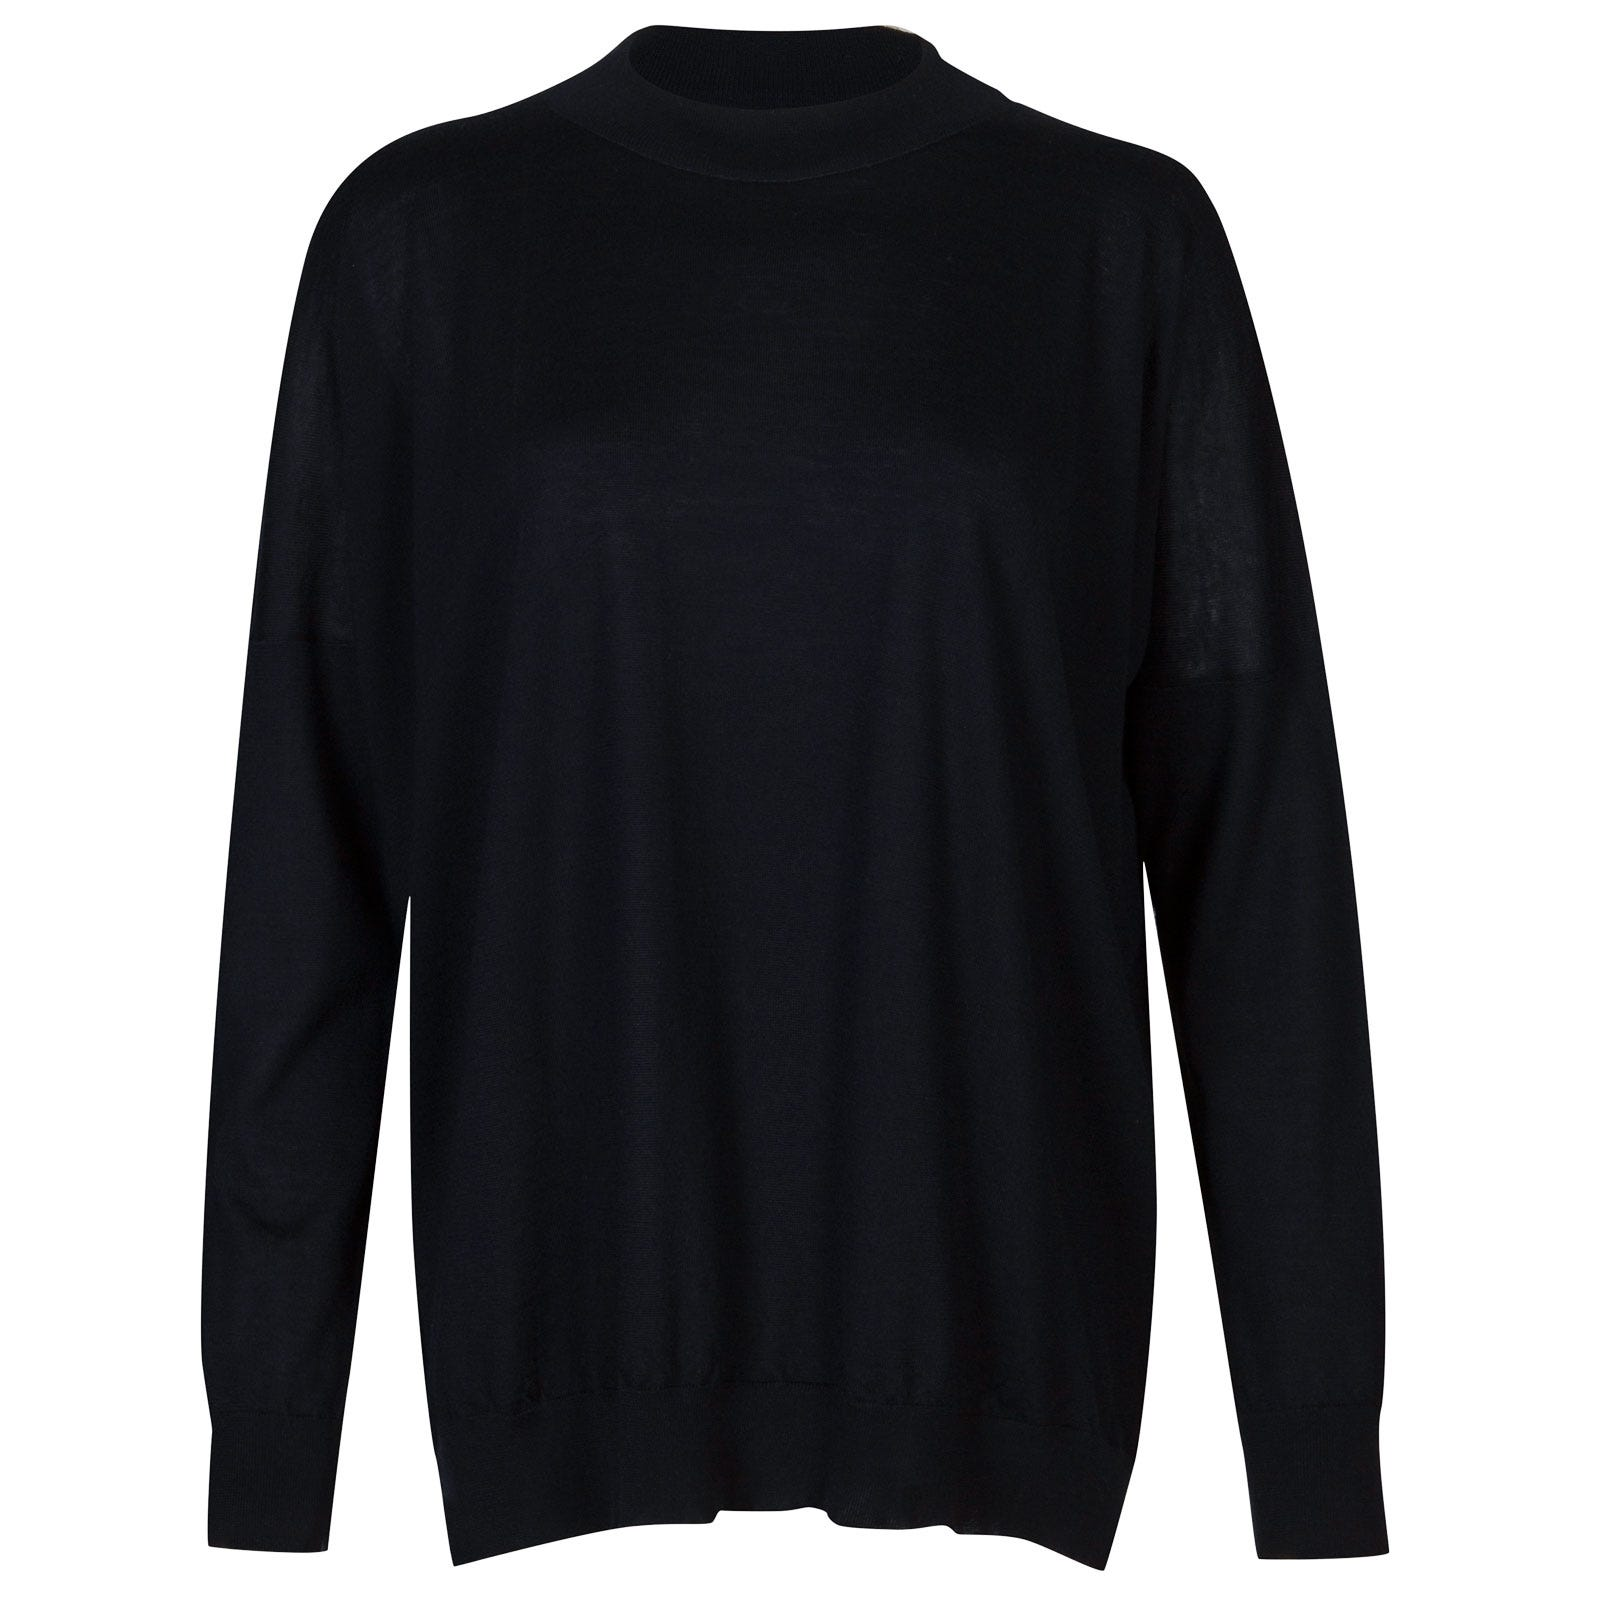 John Smedley osha Merino Wool and Cashmere Sweater in Midnight-XL